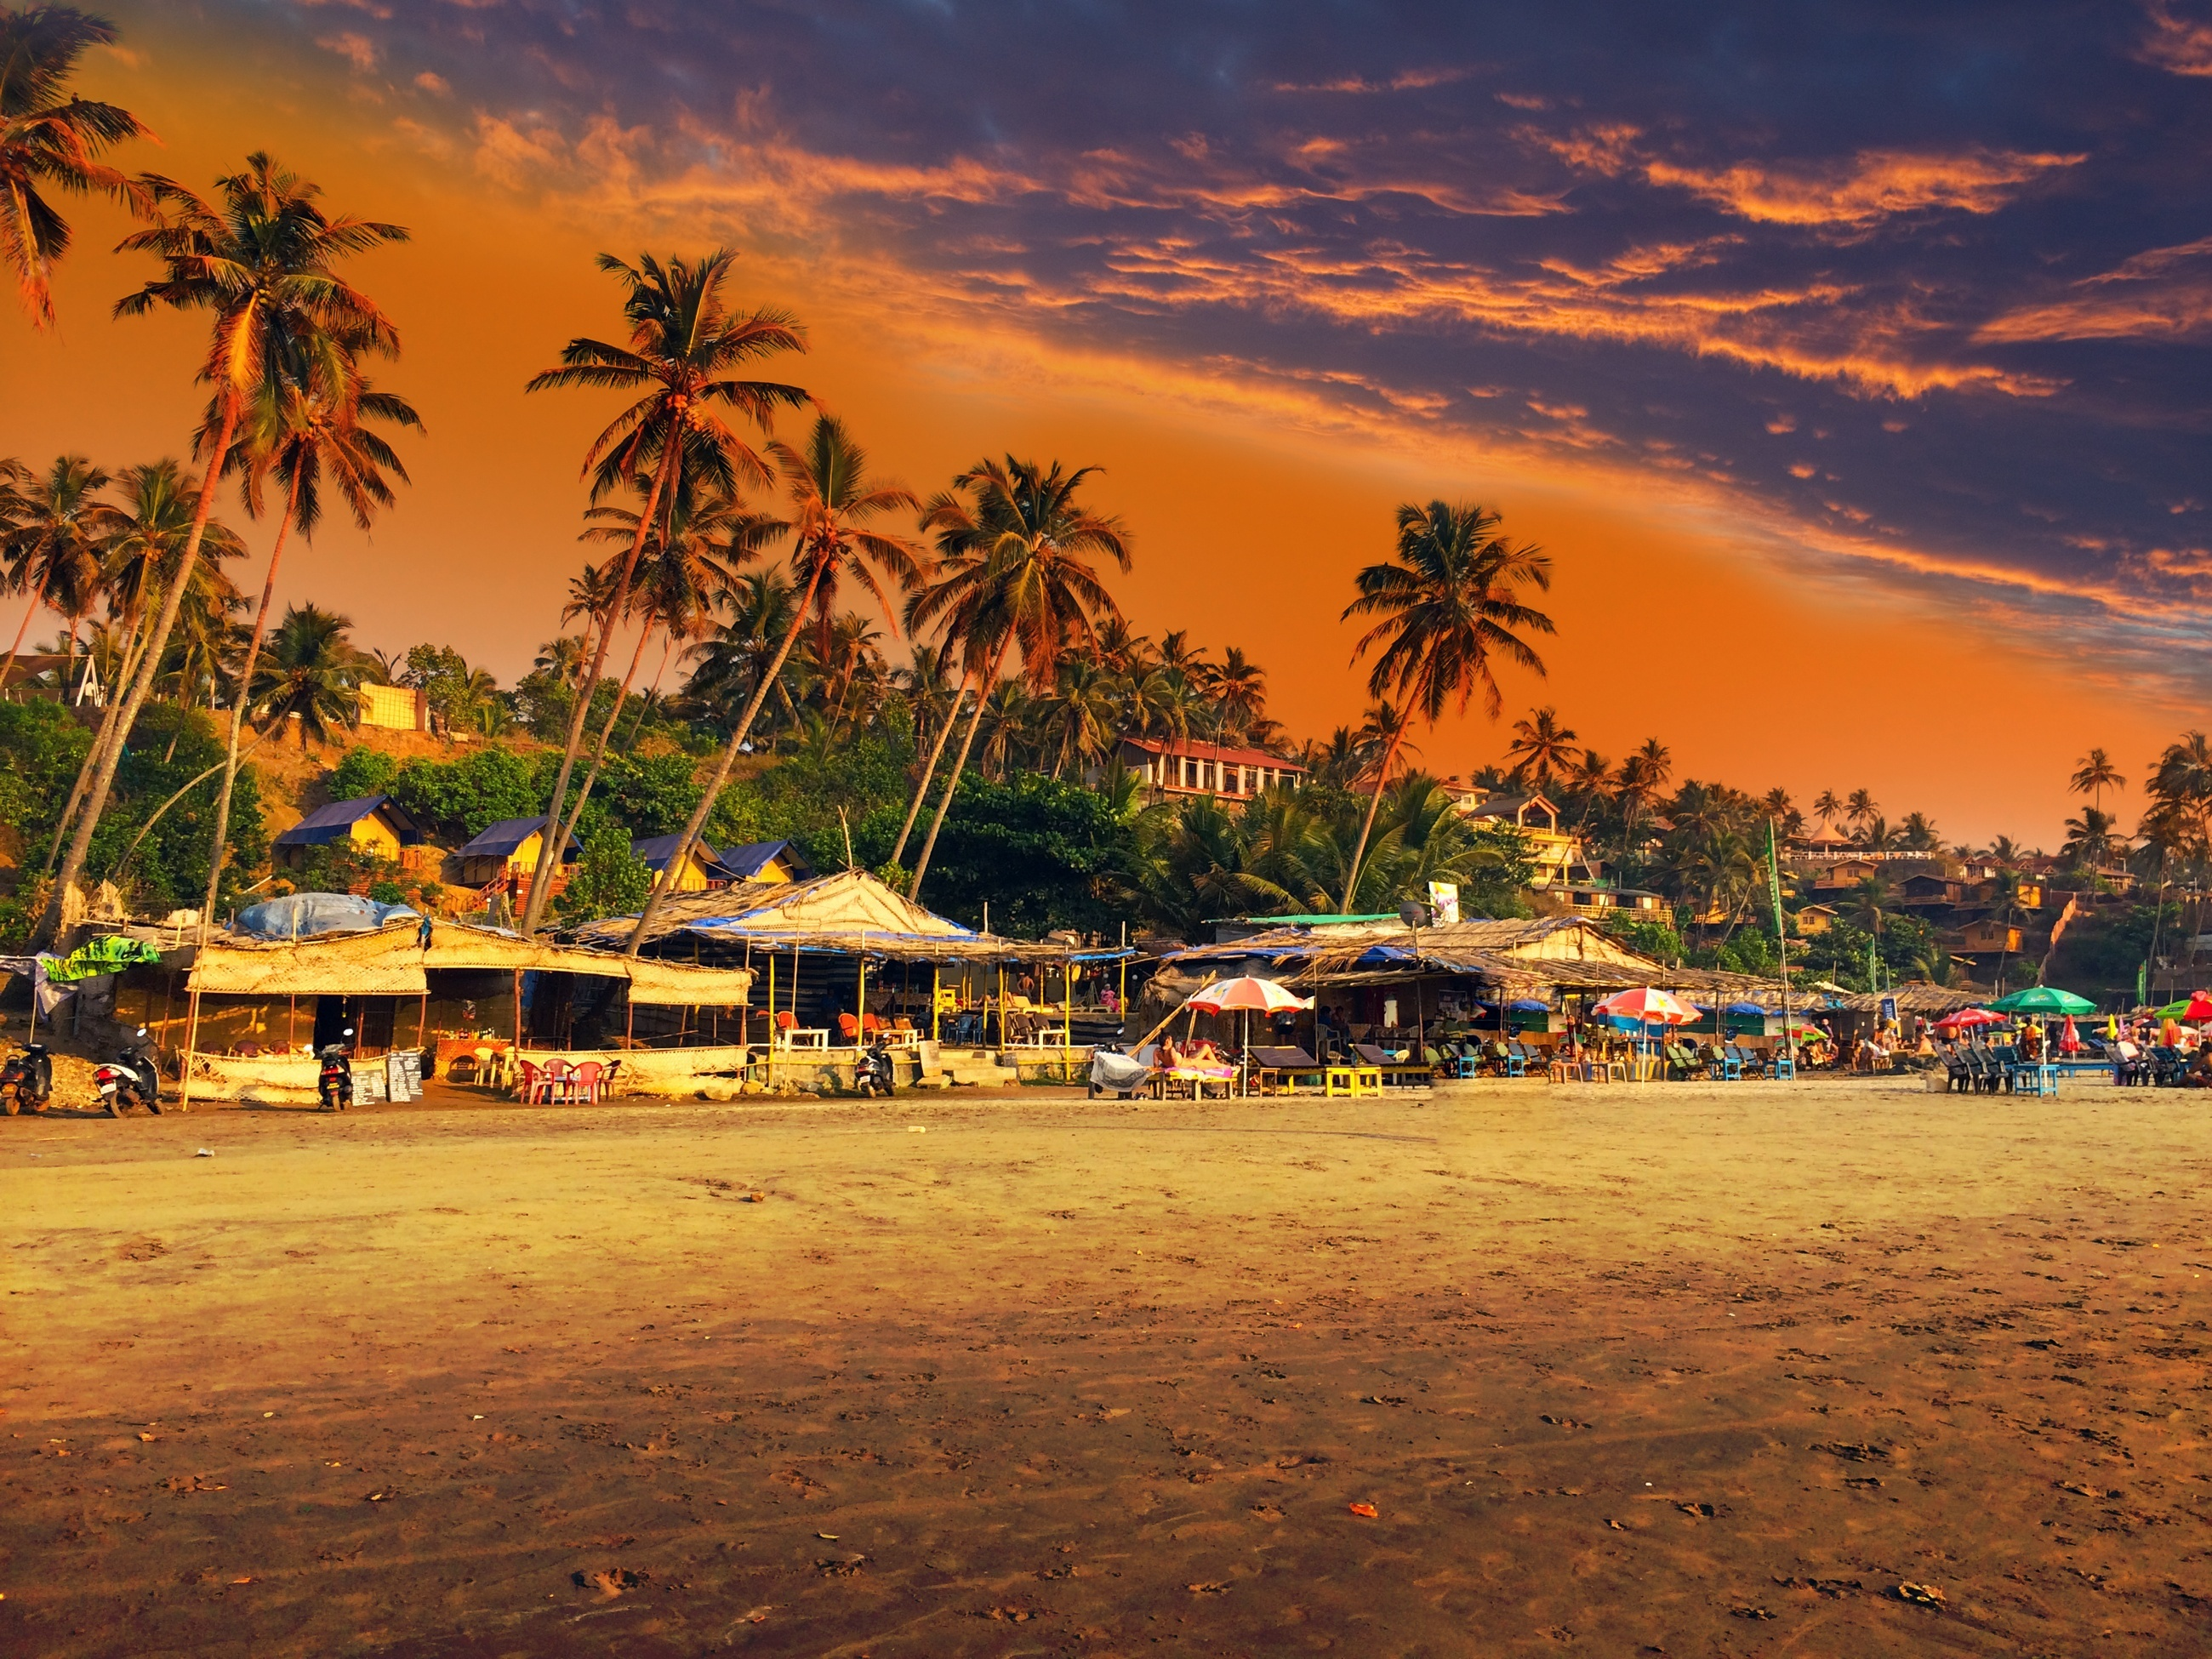 Big india. goa. beach on a sunset